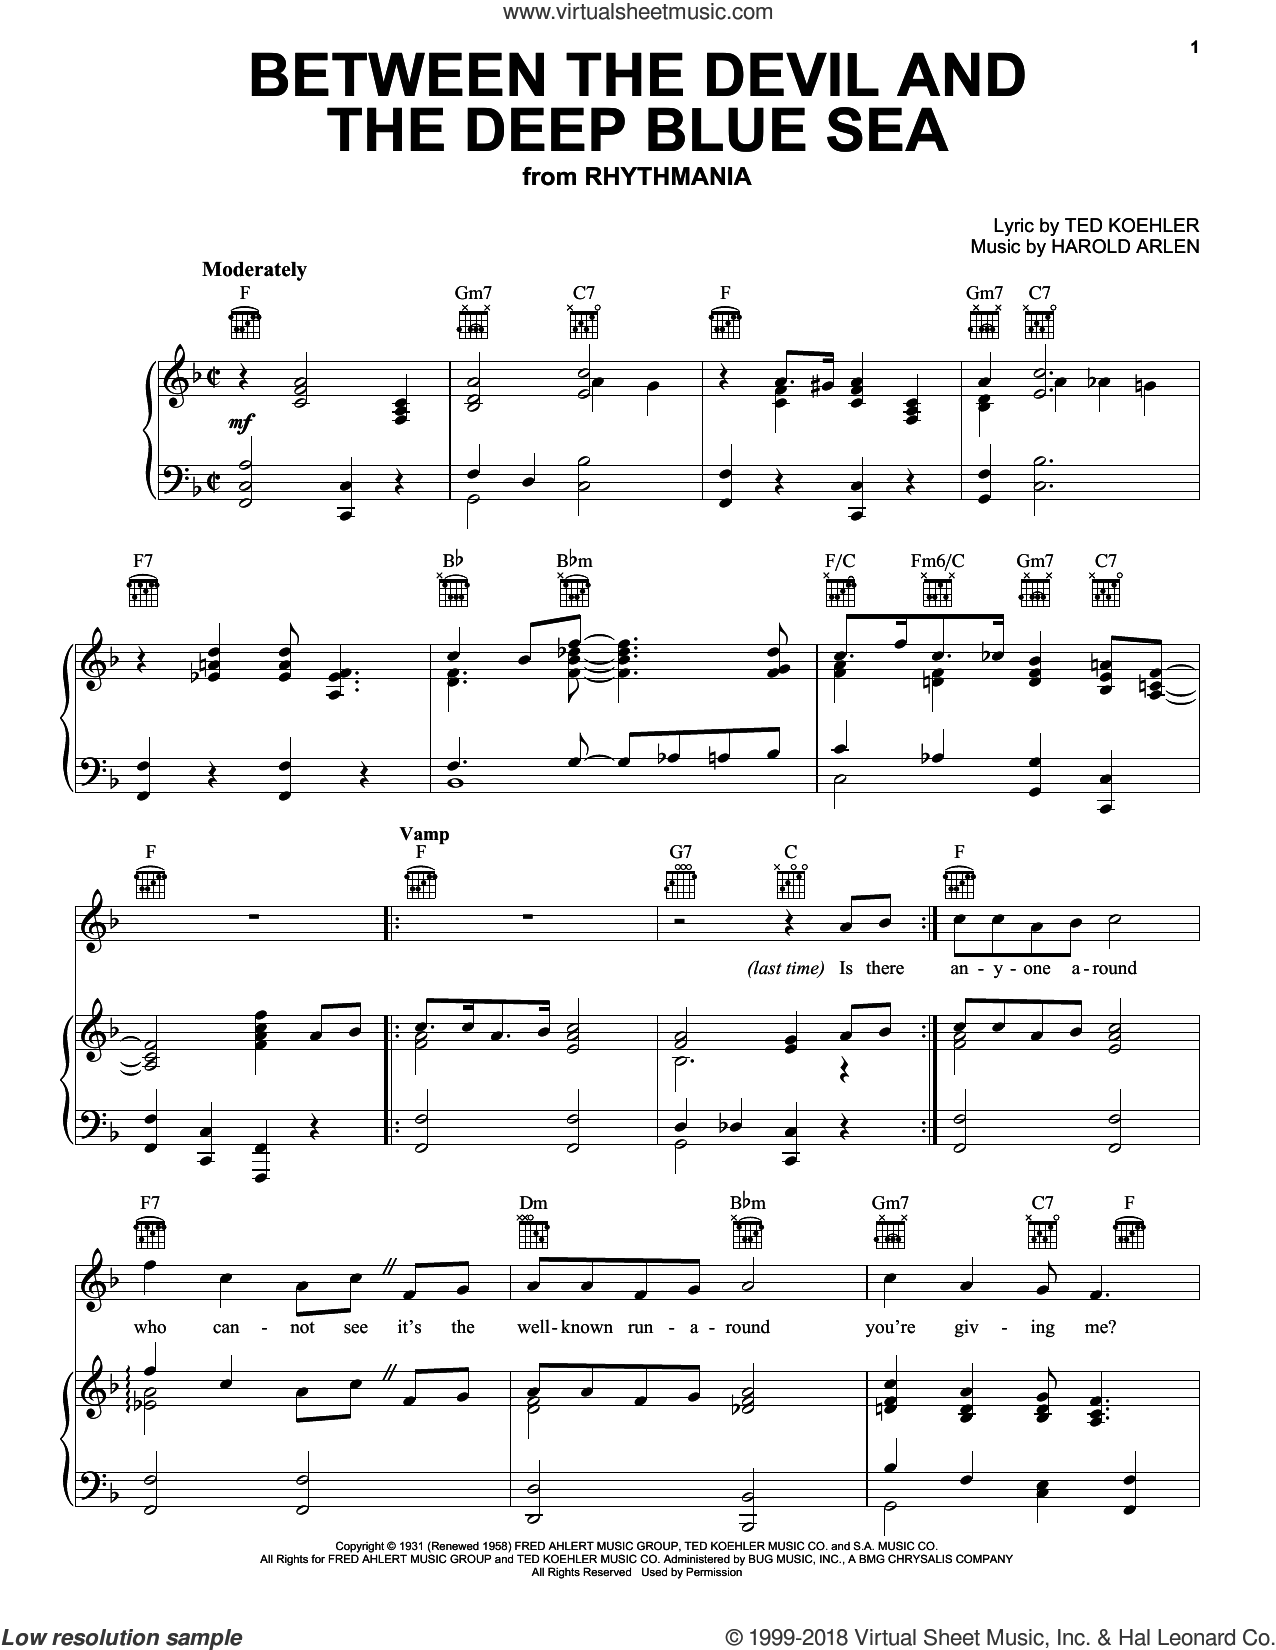 Between The Devil And The Deep Blue Sea sheet music for voice, piano or guitar by Louis Armstrong, Andre Previn, Frank Sinatra, Mel Torme, Harold Arlen and Ted Koehler, intermediate skill level